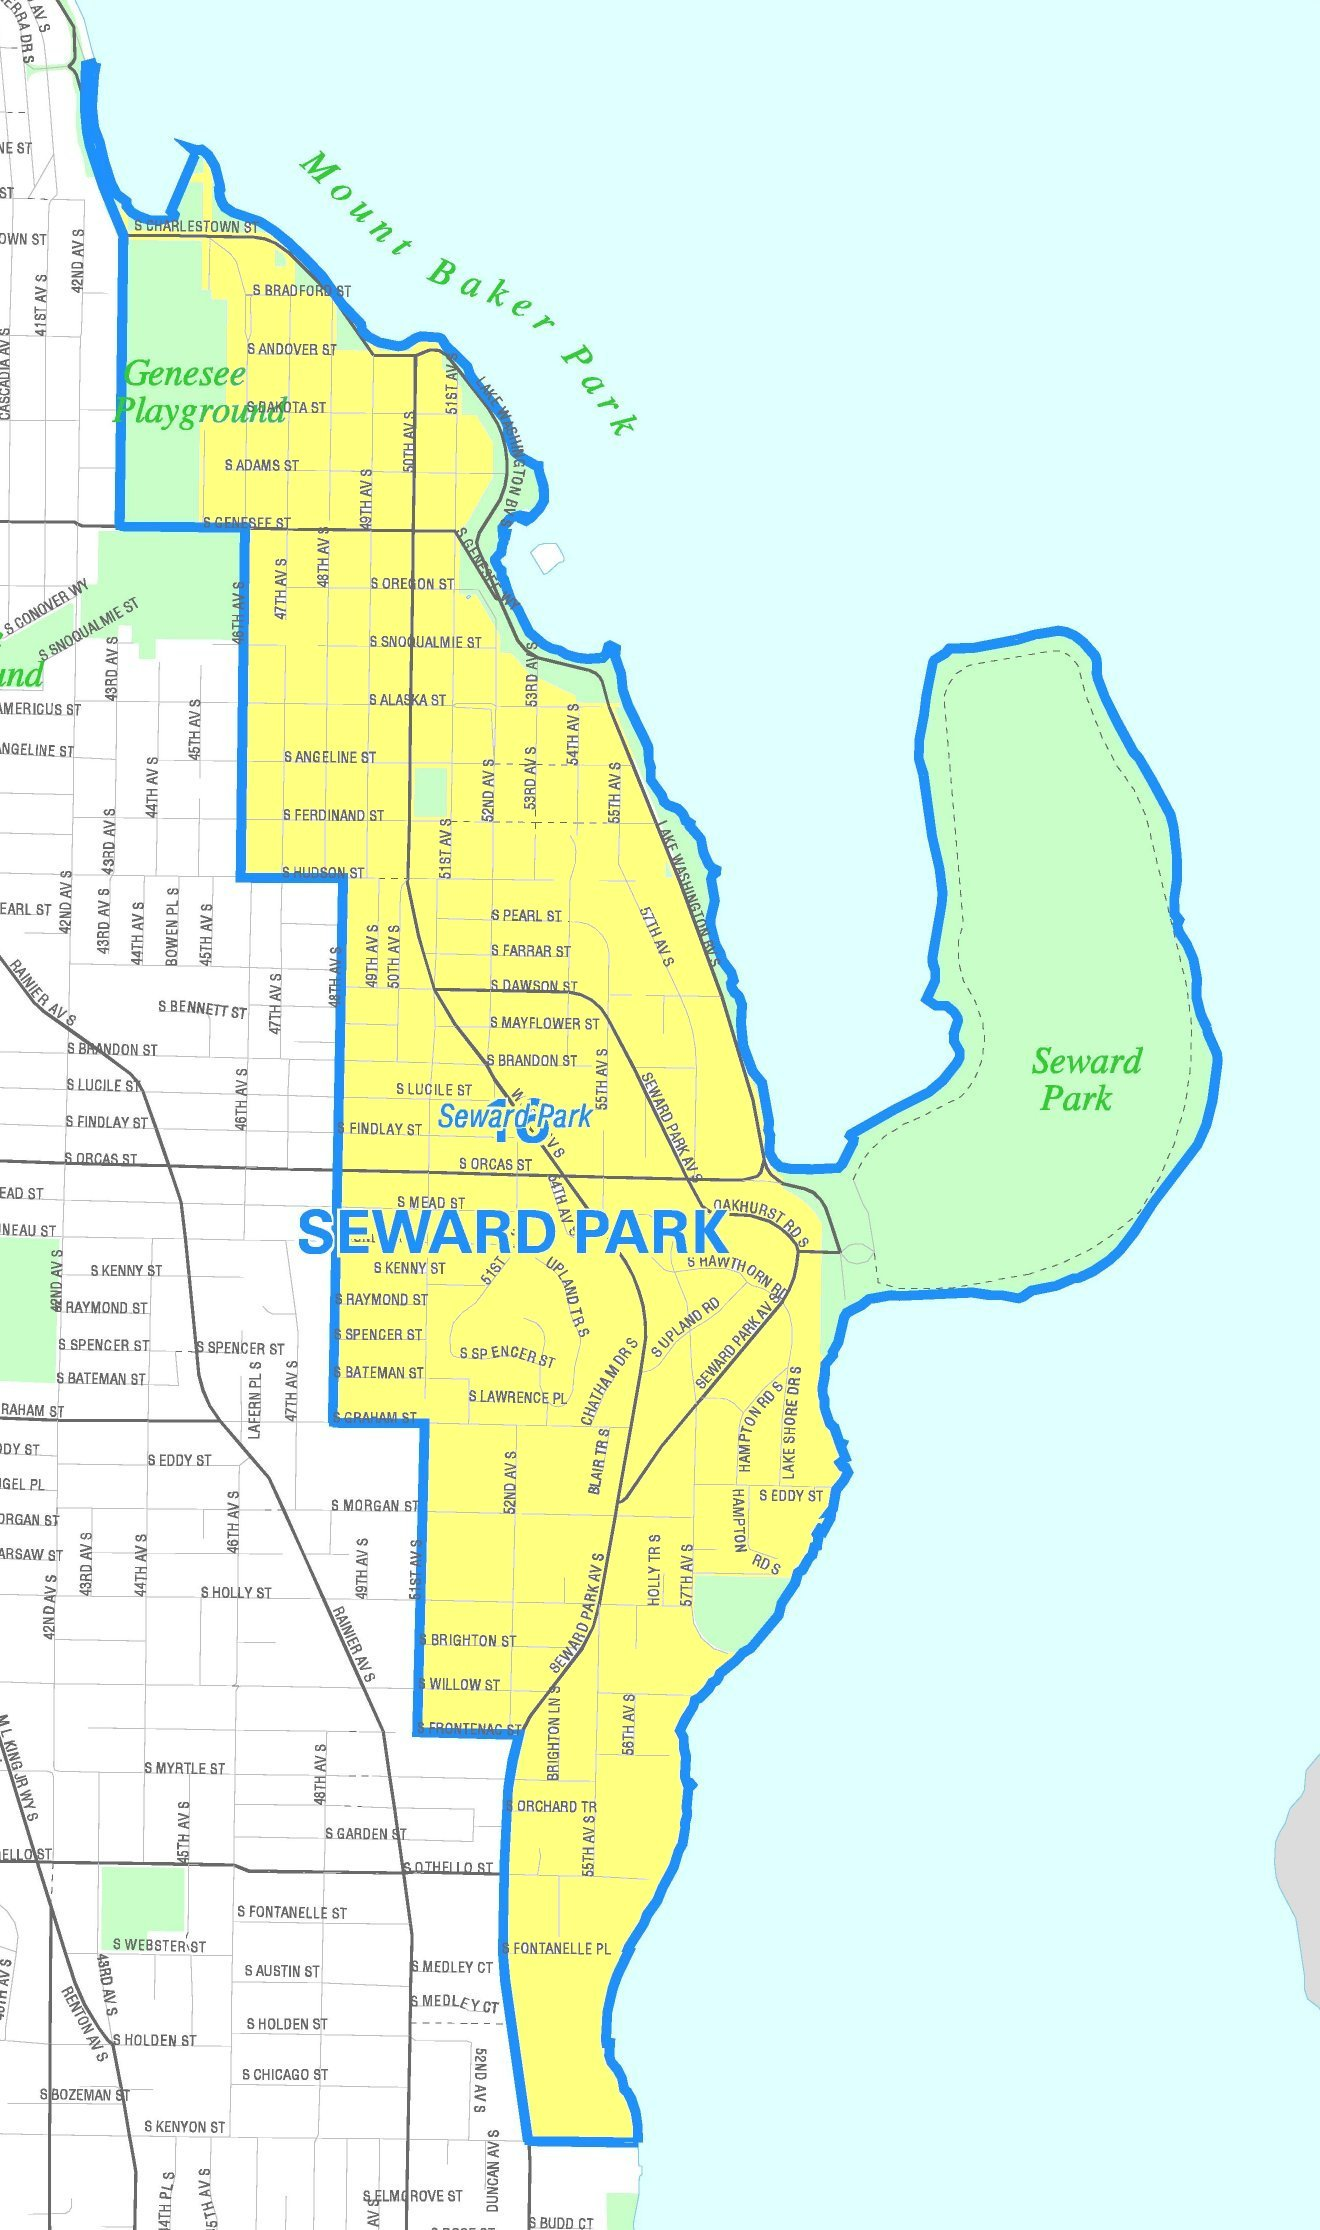 Seward Park Map Dosiero:Seattle   Seward Park map.   Vikipedio Seward Park Map